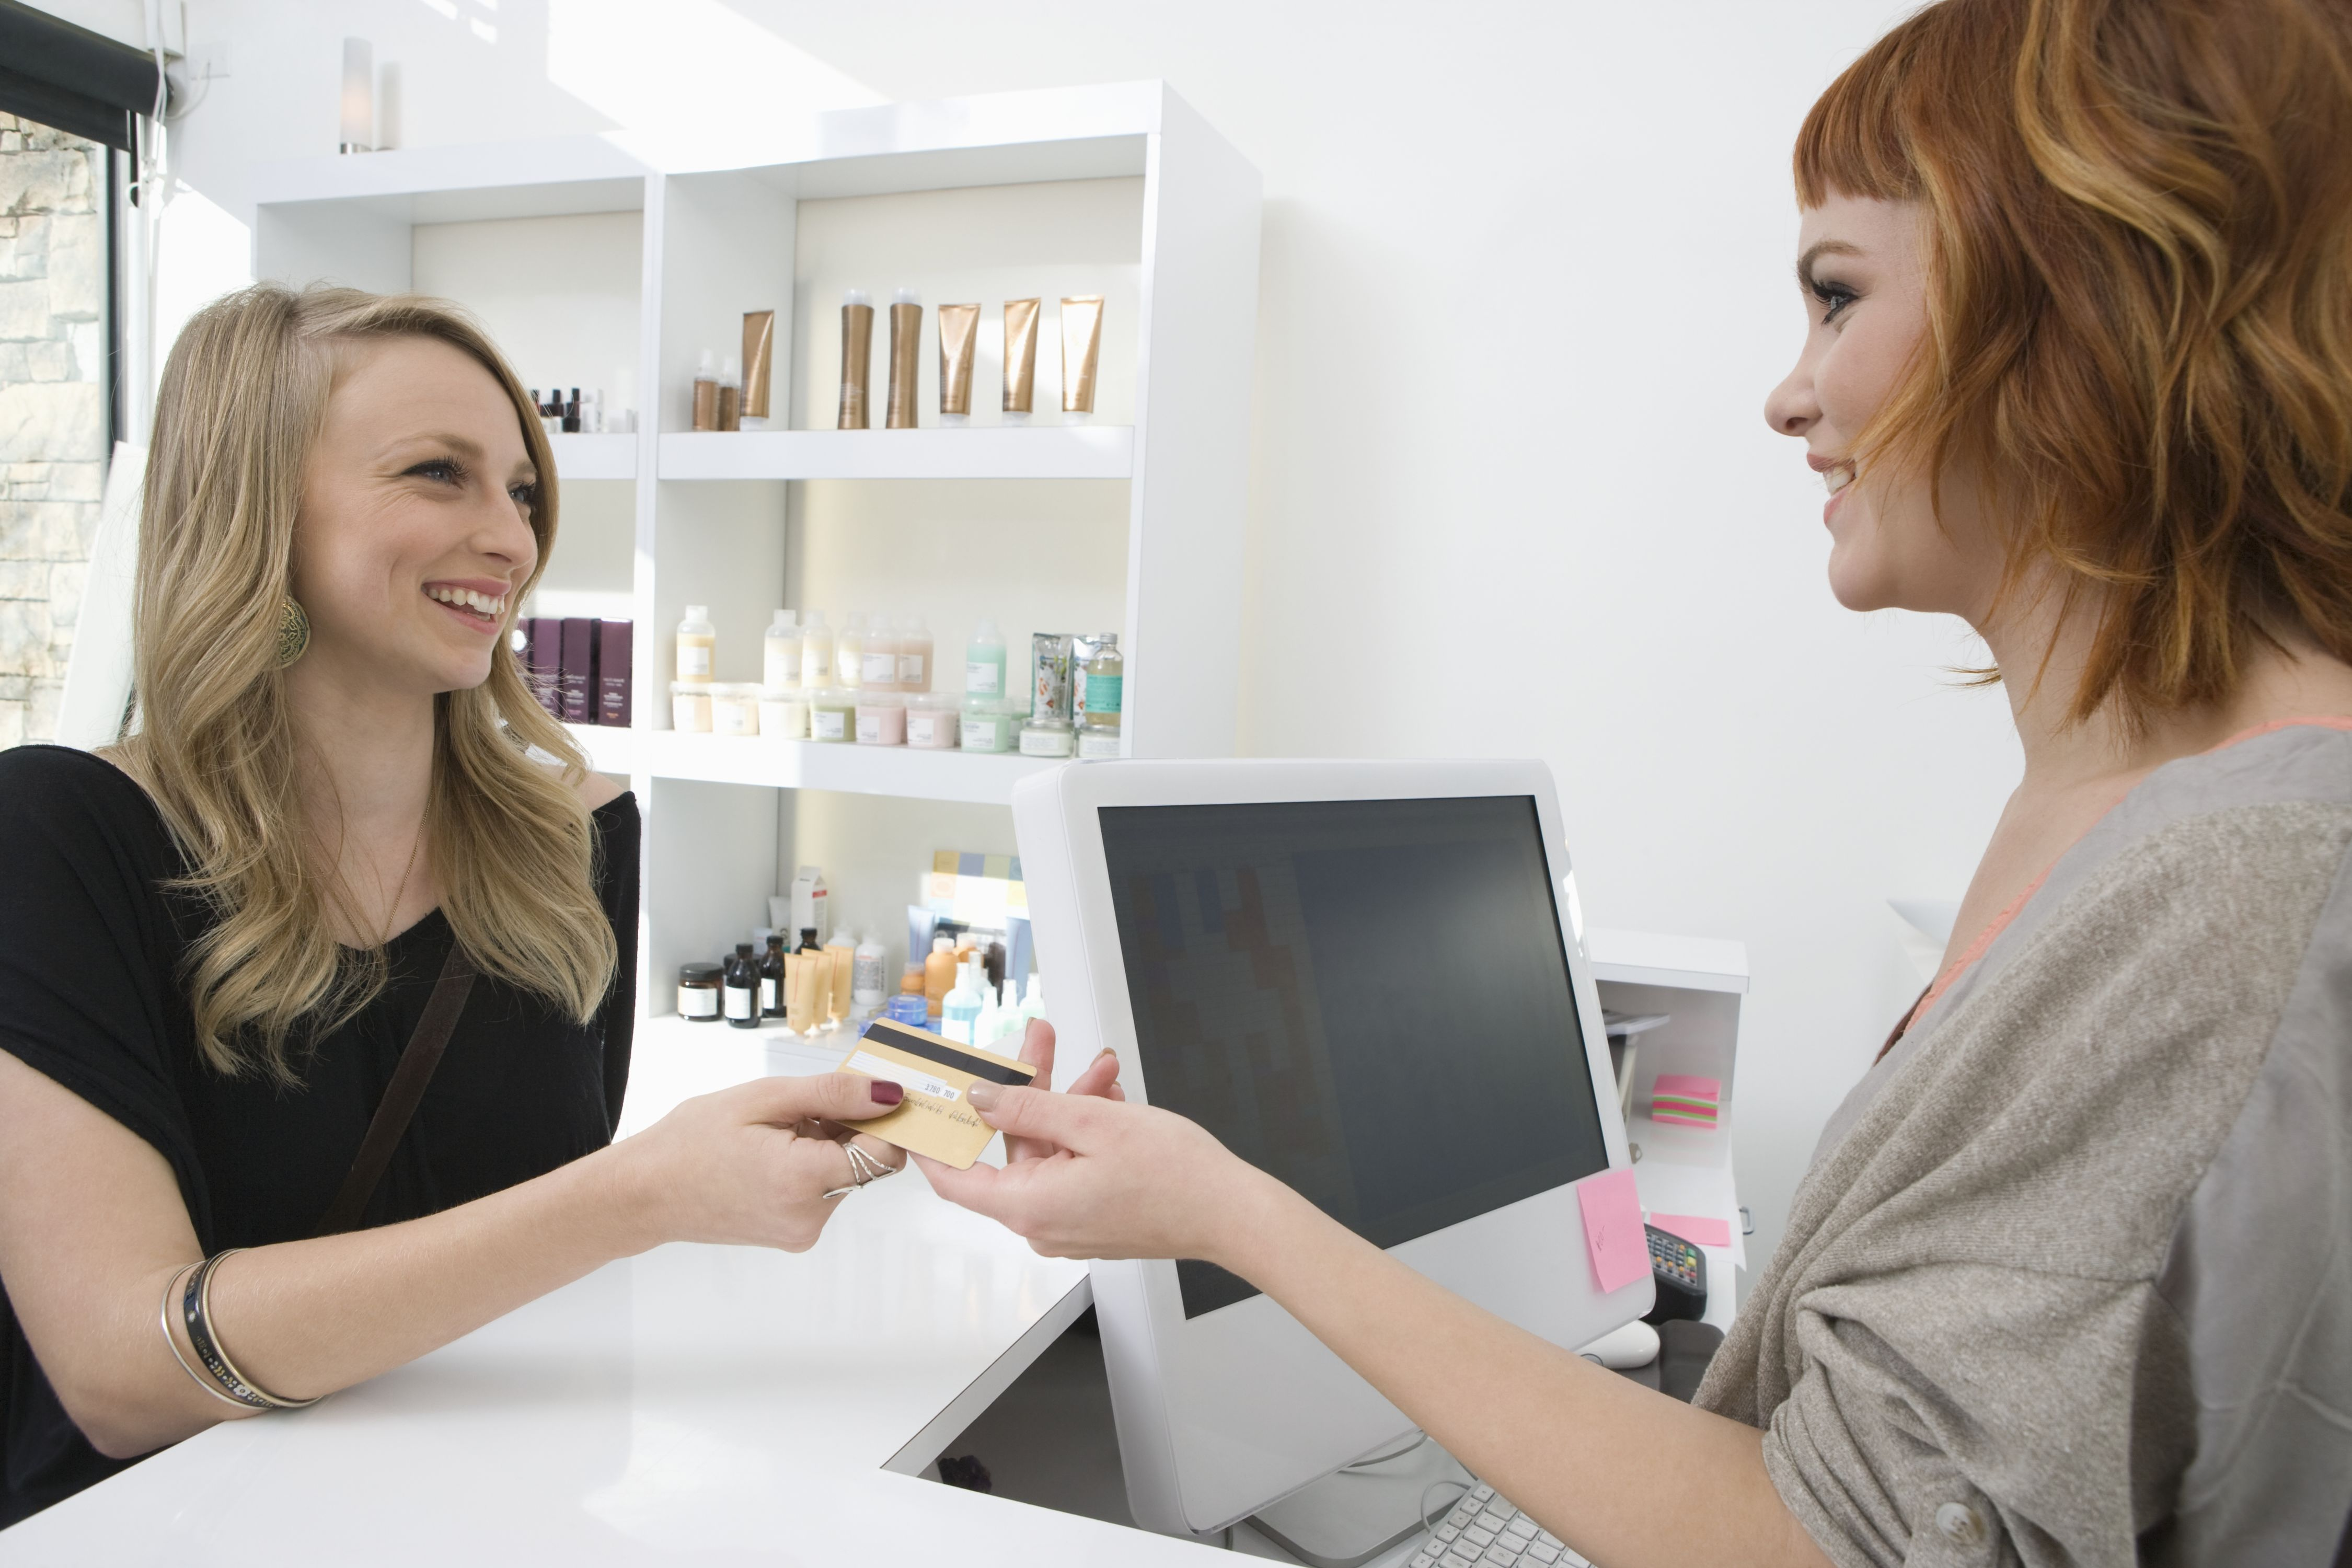 This Is How Much You Should Tip At A Hair Salon